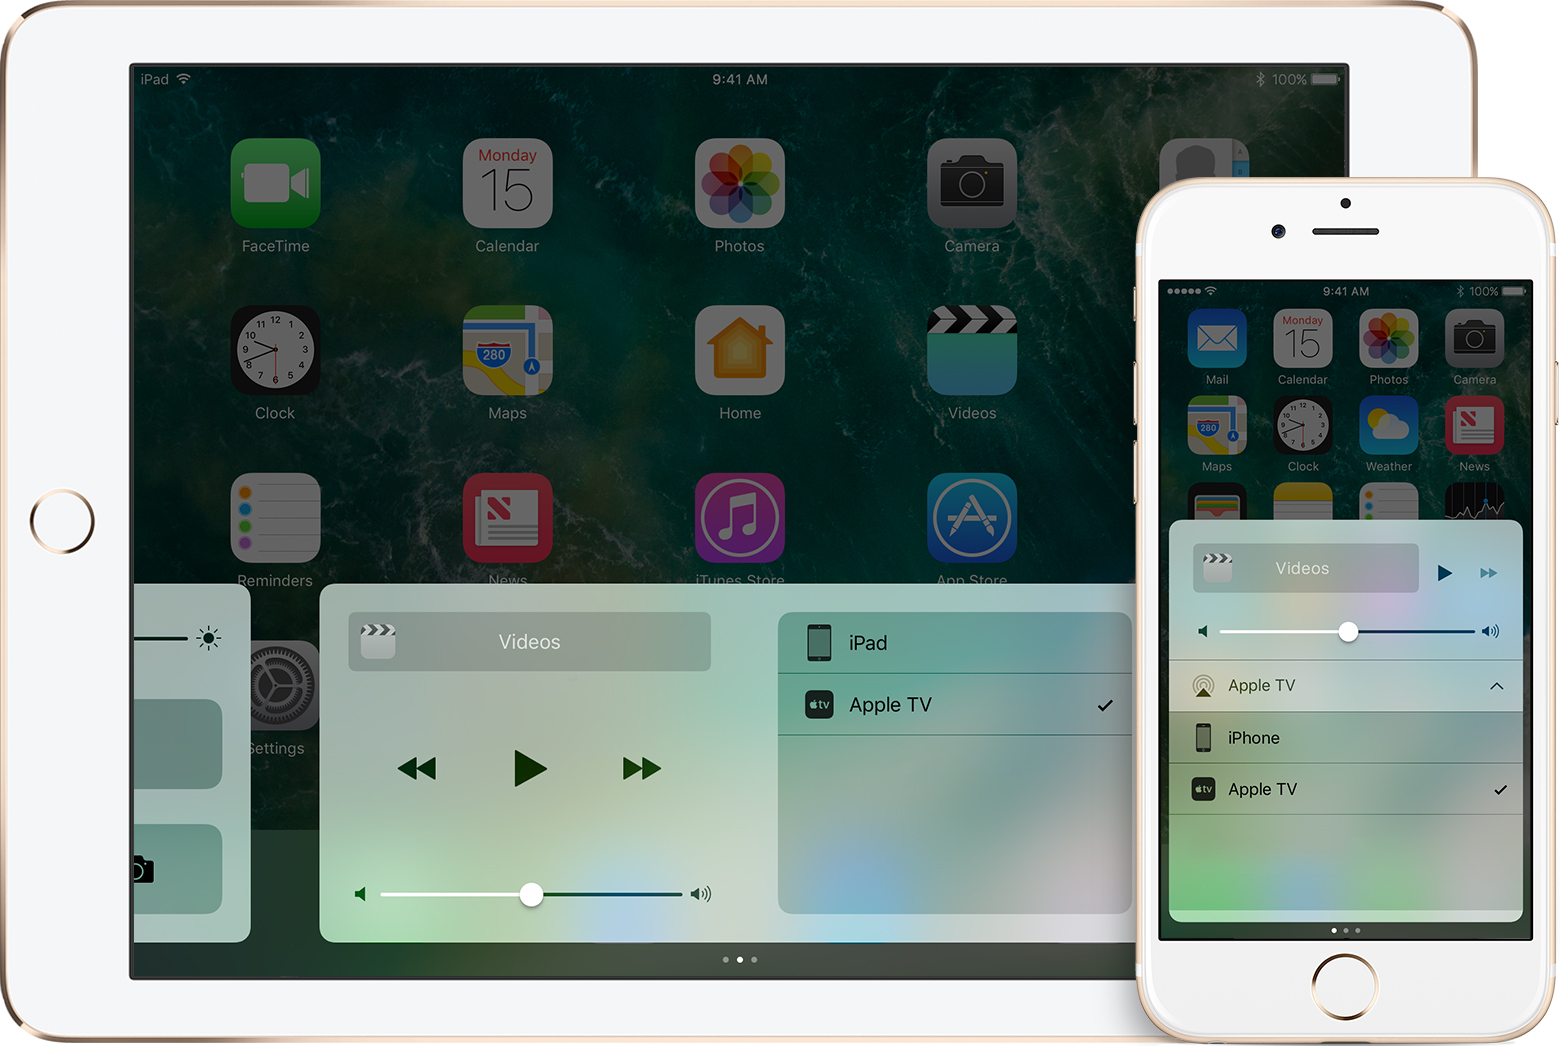 How to connect an iPhone, iPad or iPod Touch to your TV